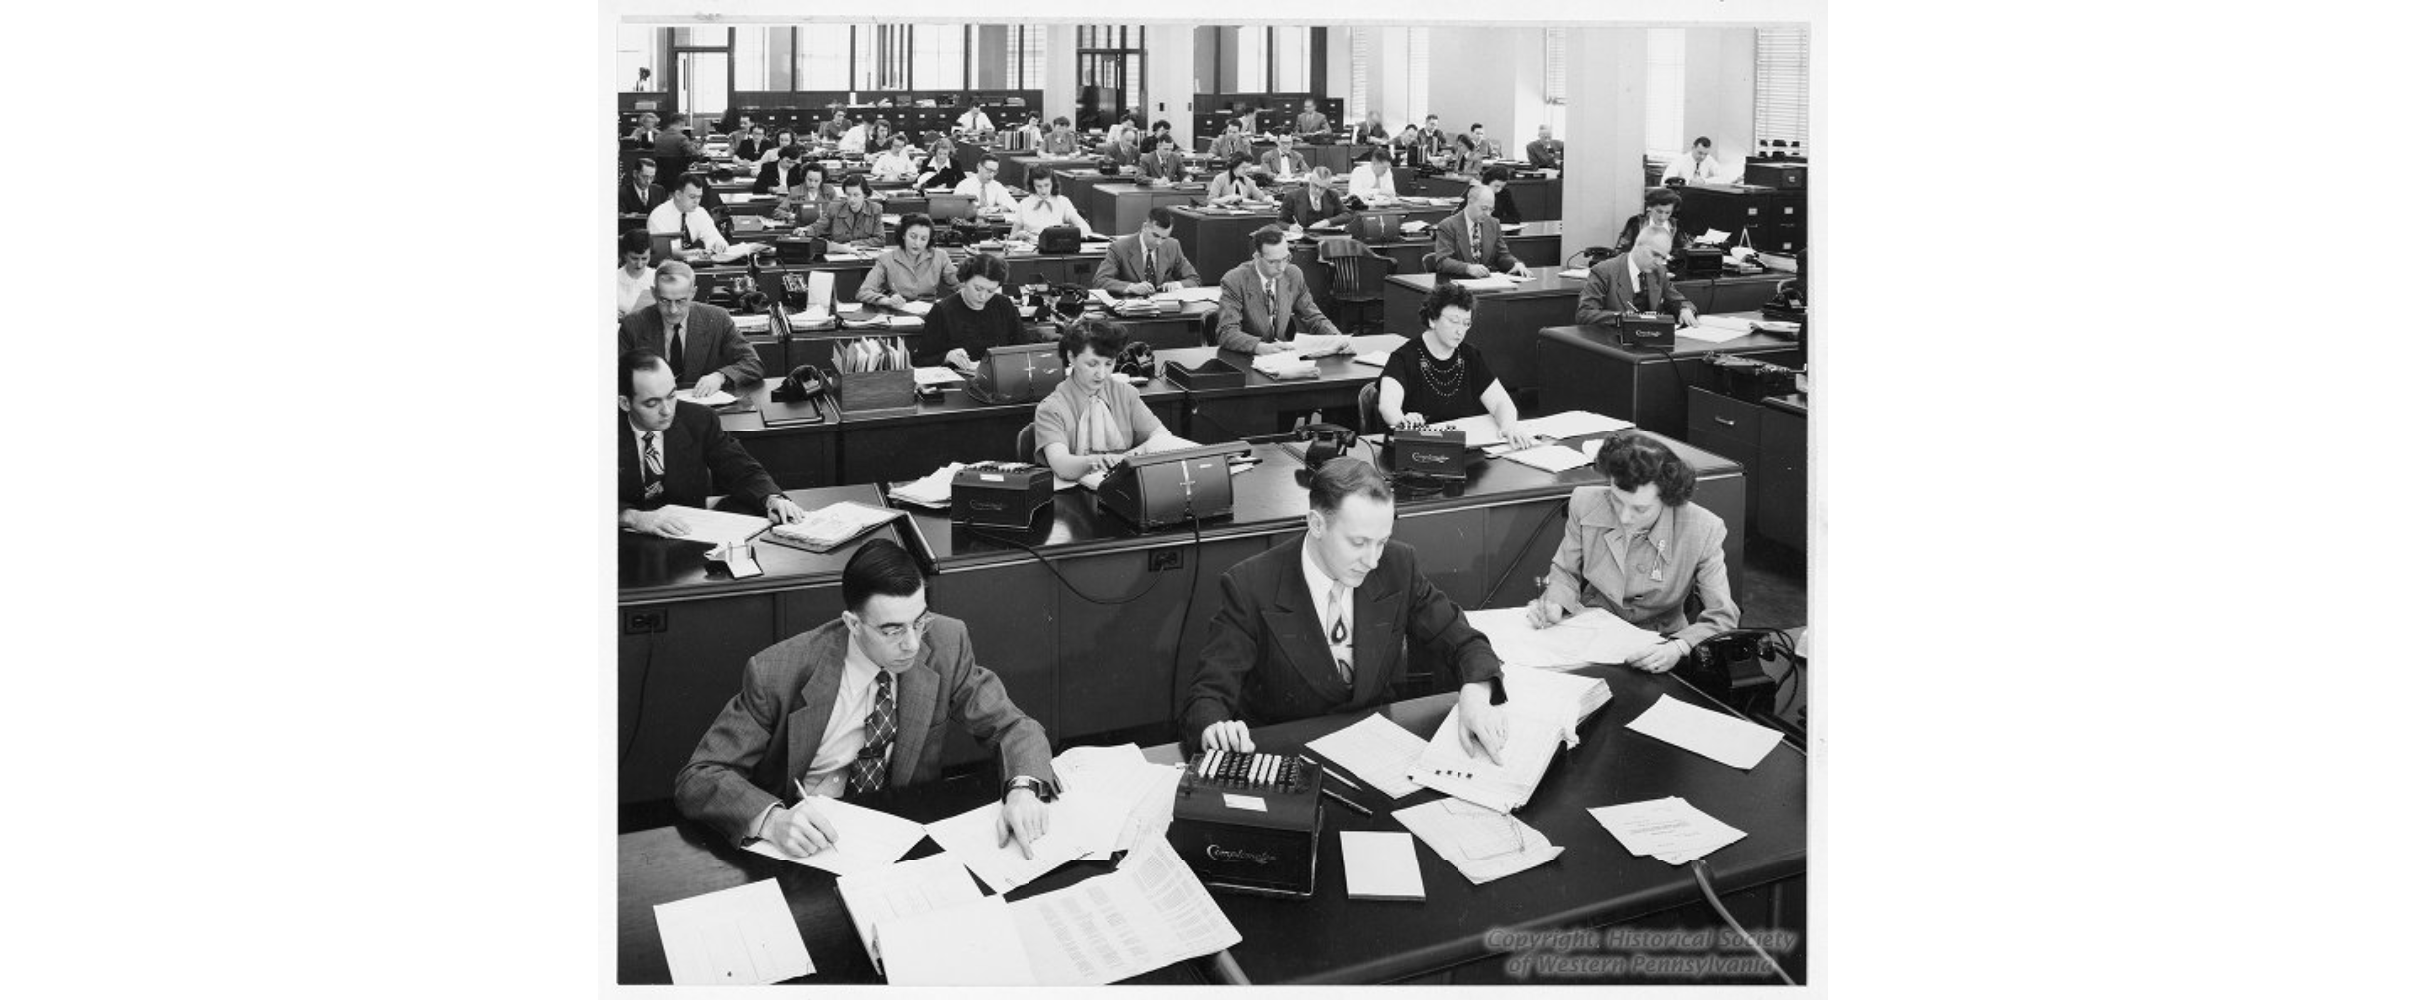 Payment operations has been a challenge of scale for decades. In 1951, as Heinz Company products became familiar in markets all over the world, hundreds of accountants were required to help manage the increasing volume of transactions.